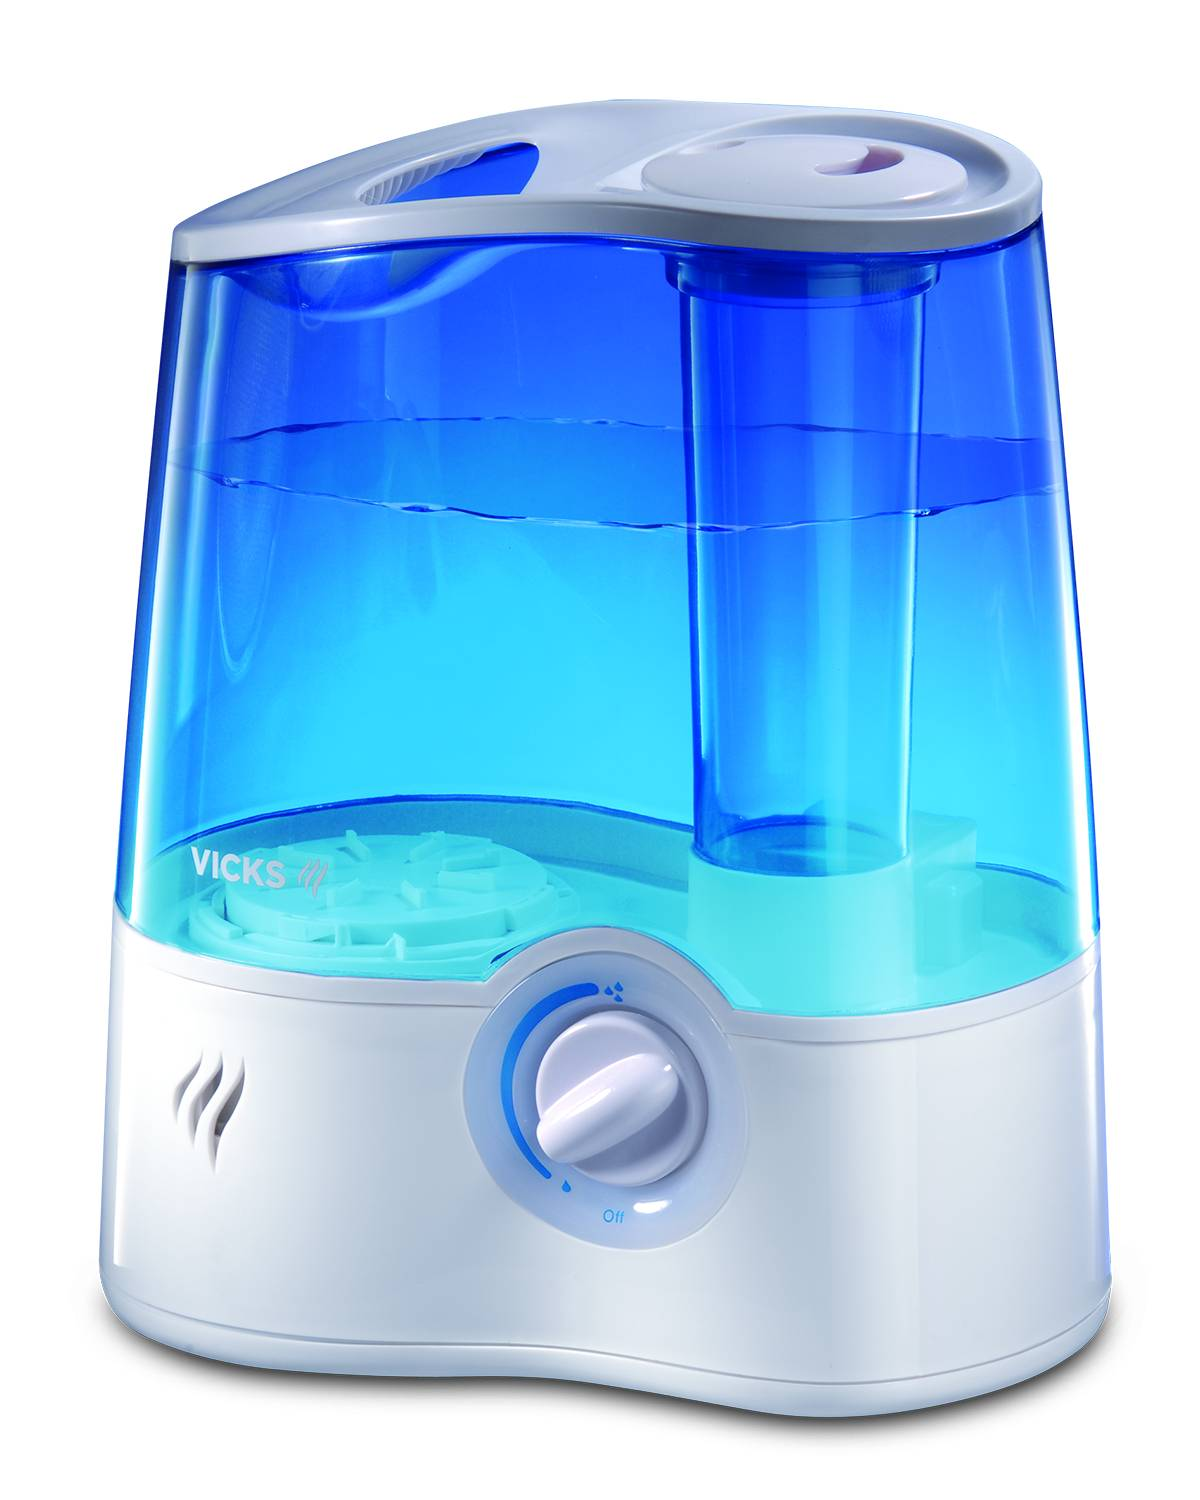 Vicks Filter Free Cool Mist Humidifier 1.0 CT Walmart.com #069CC5